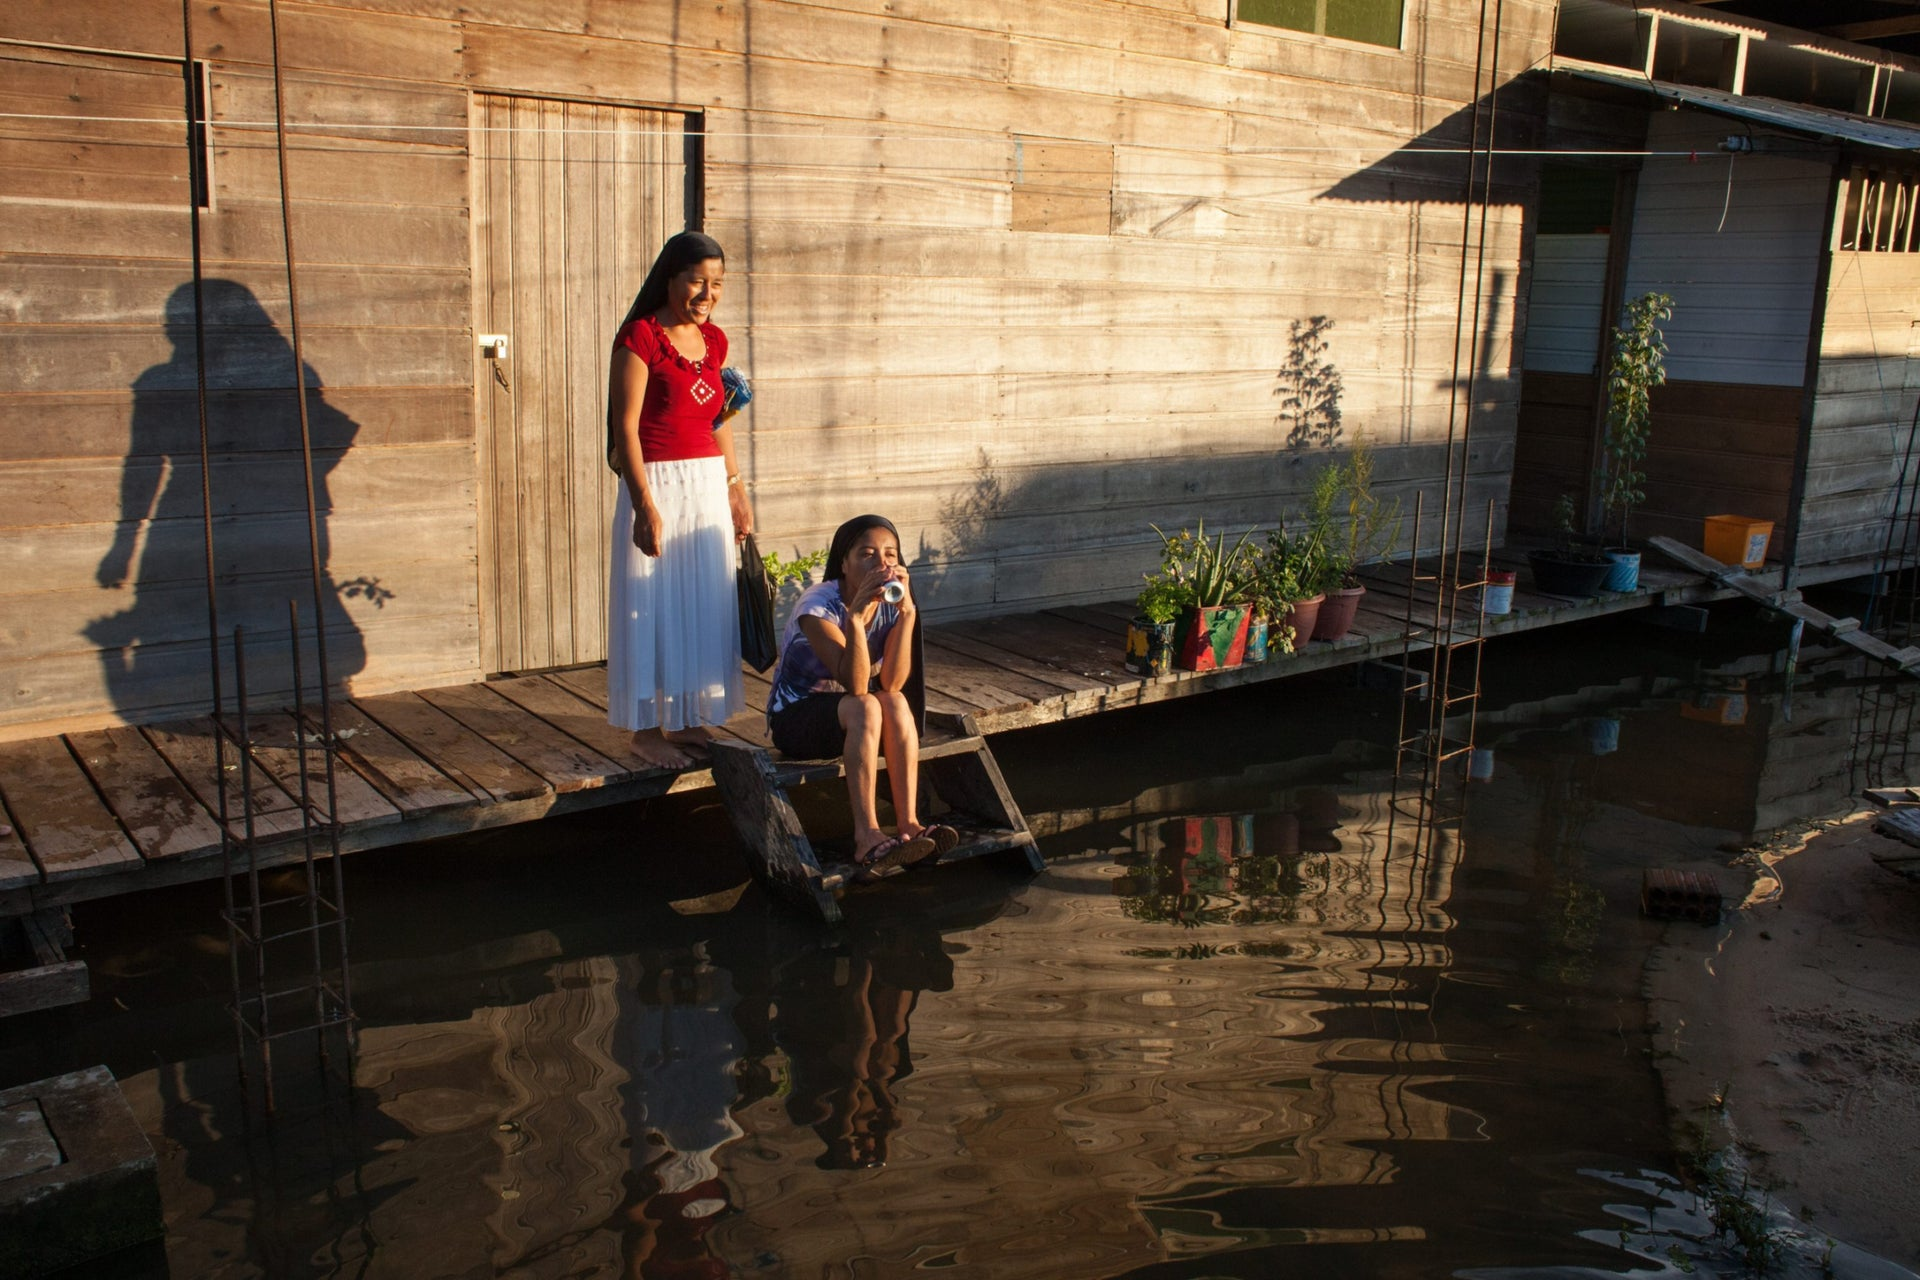 Young women from the New Israelite community in Islandia, Peru, sit next to a flooded street.